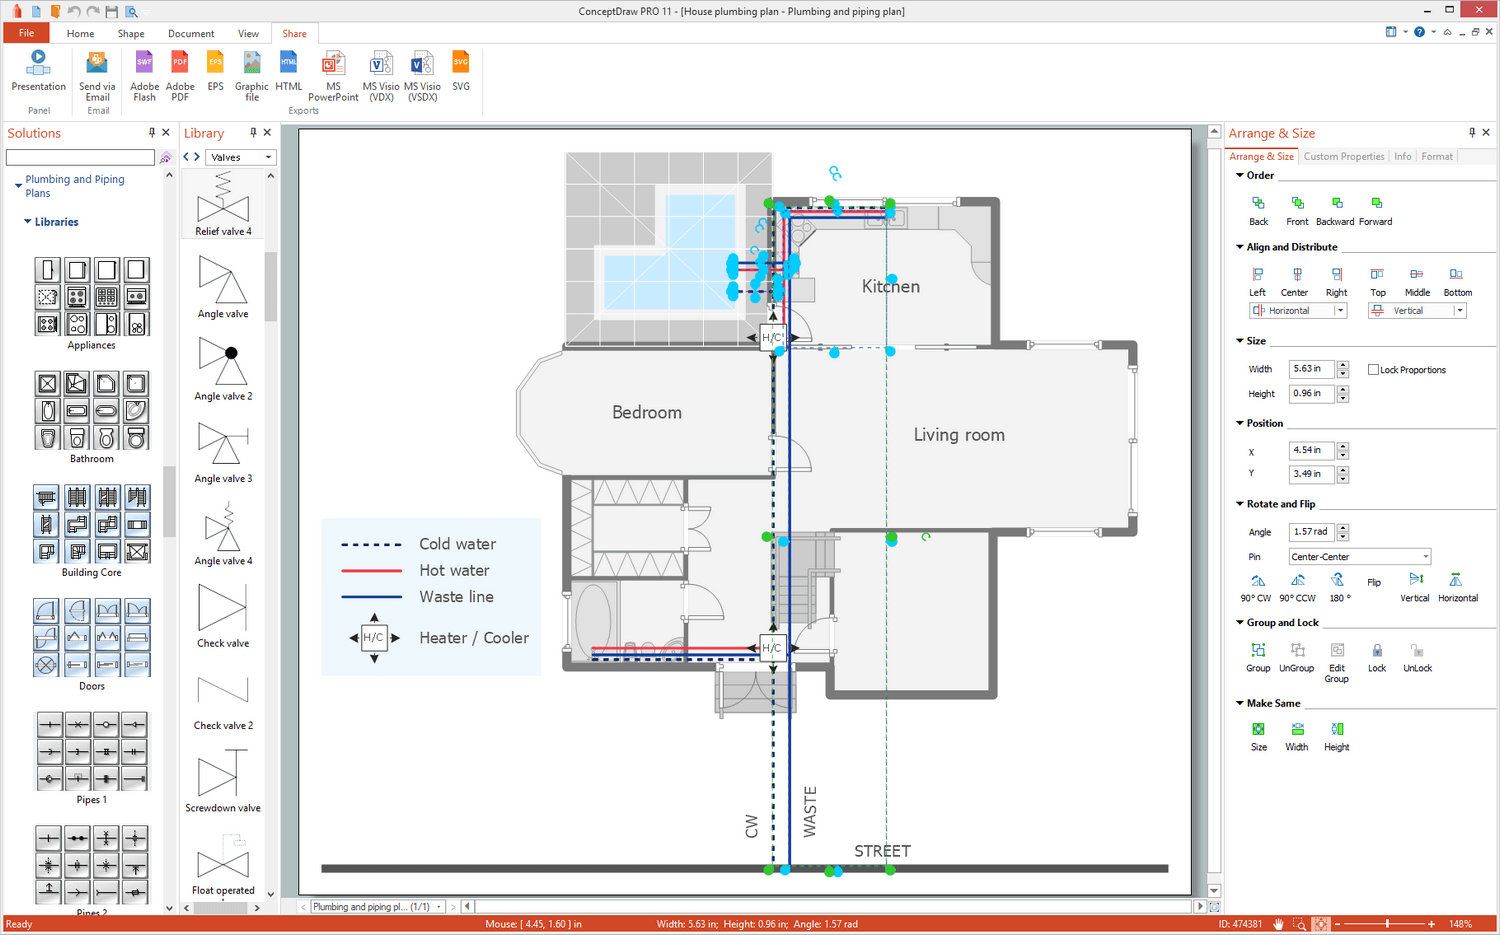 Plumbing and Piping Plans Solution for Microsoft Windows